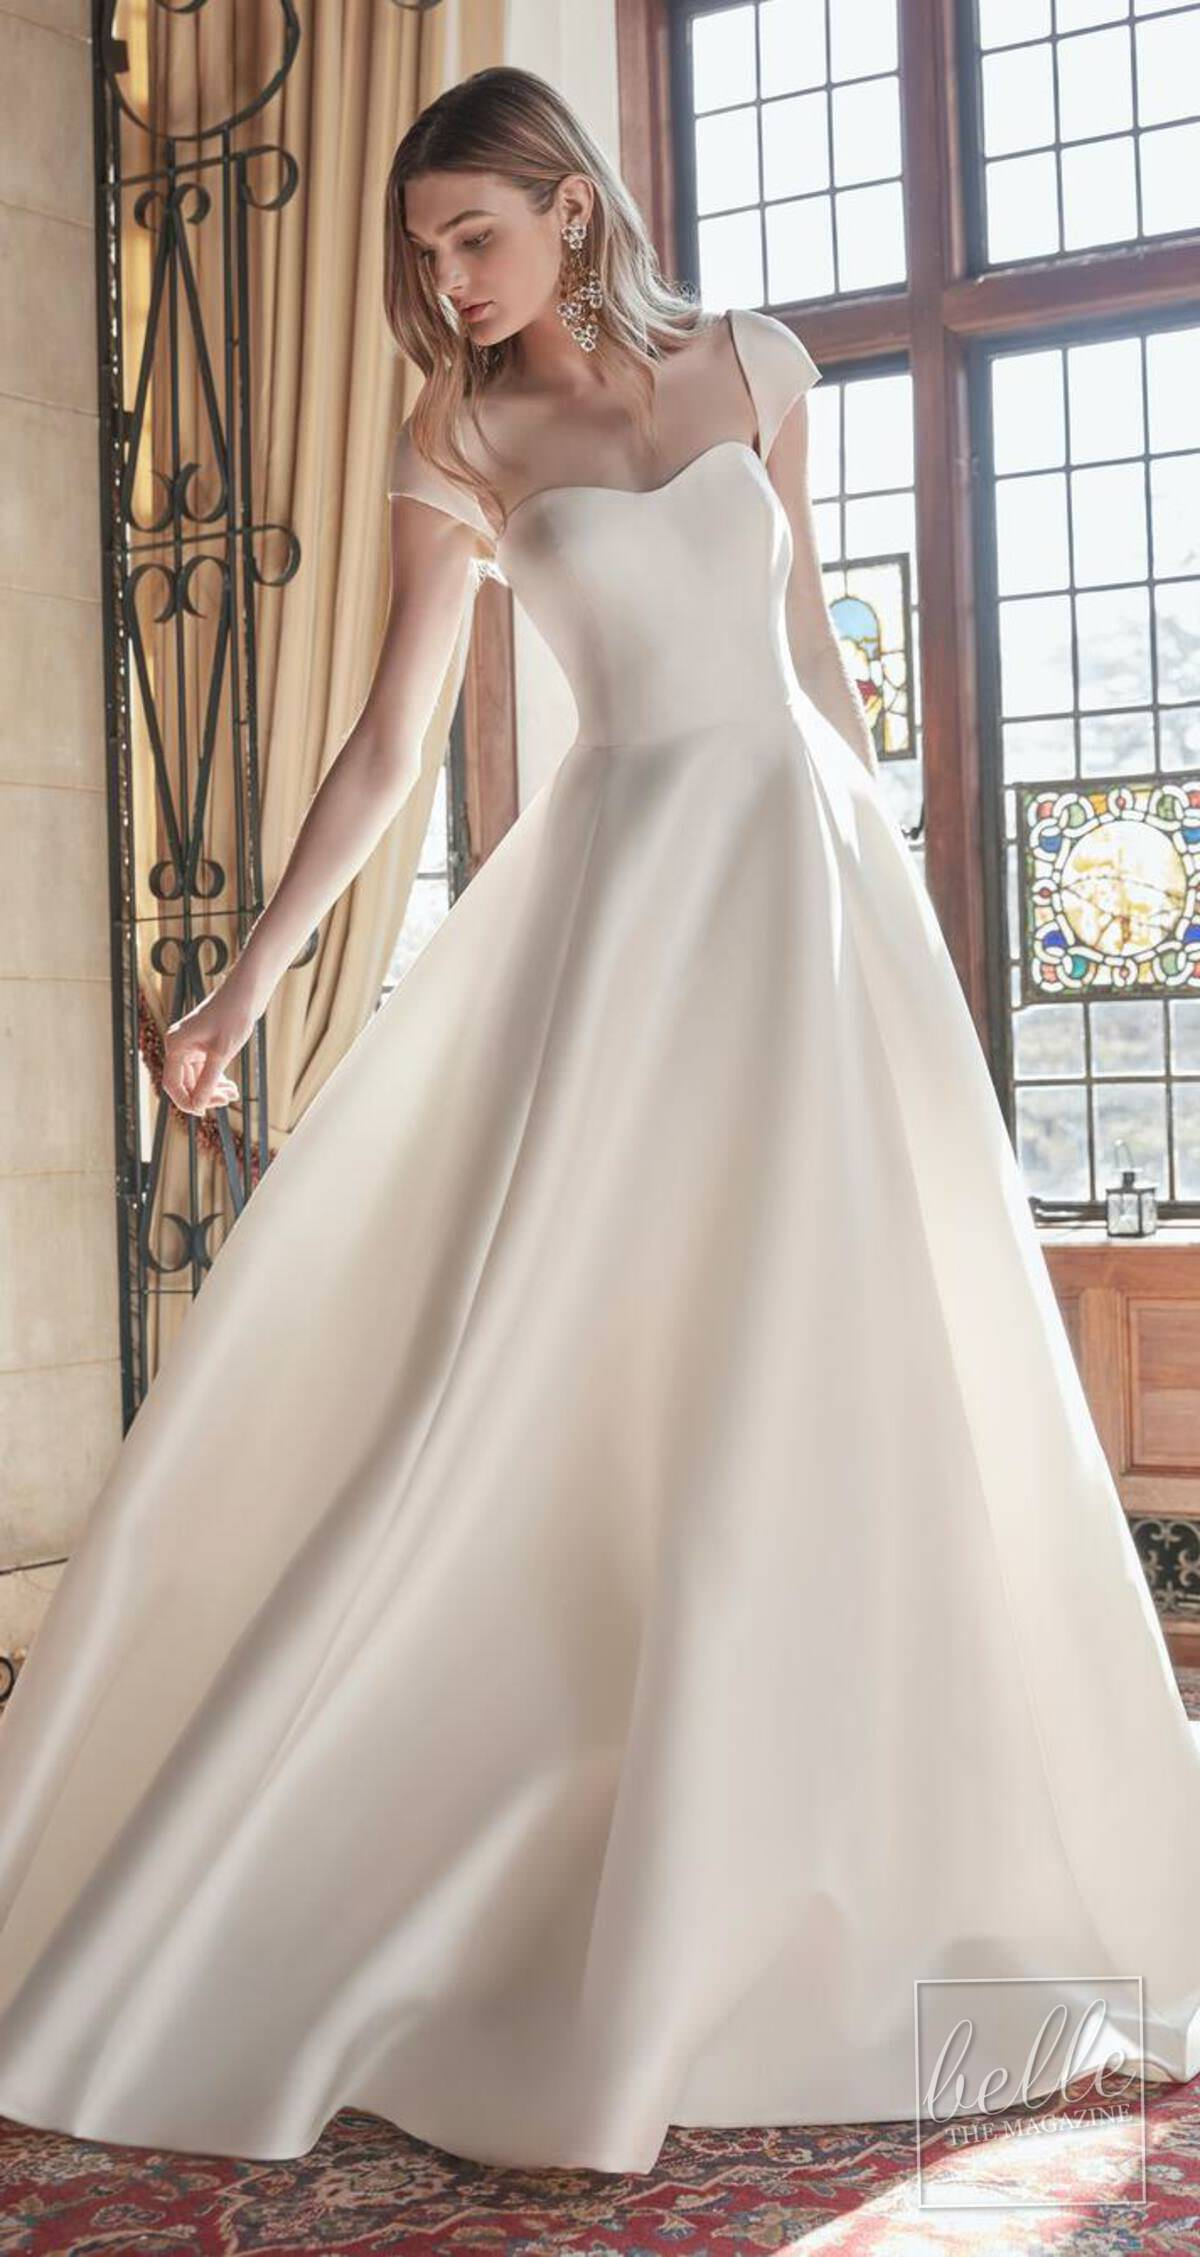 Wedding dress trends 2021 - Minimalist gown - Sareh Nouri Spring 2022 the enchantment collection